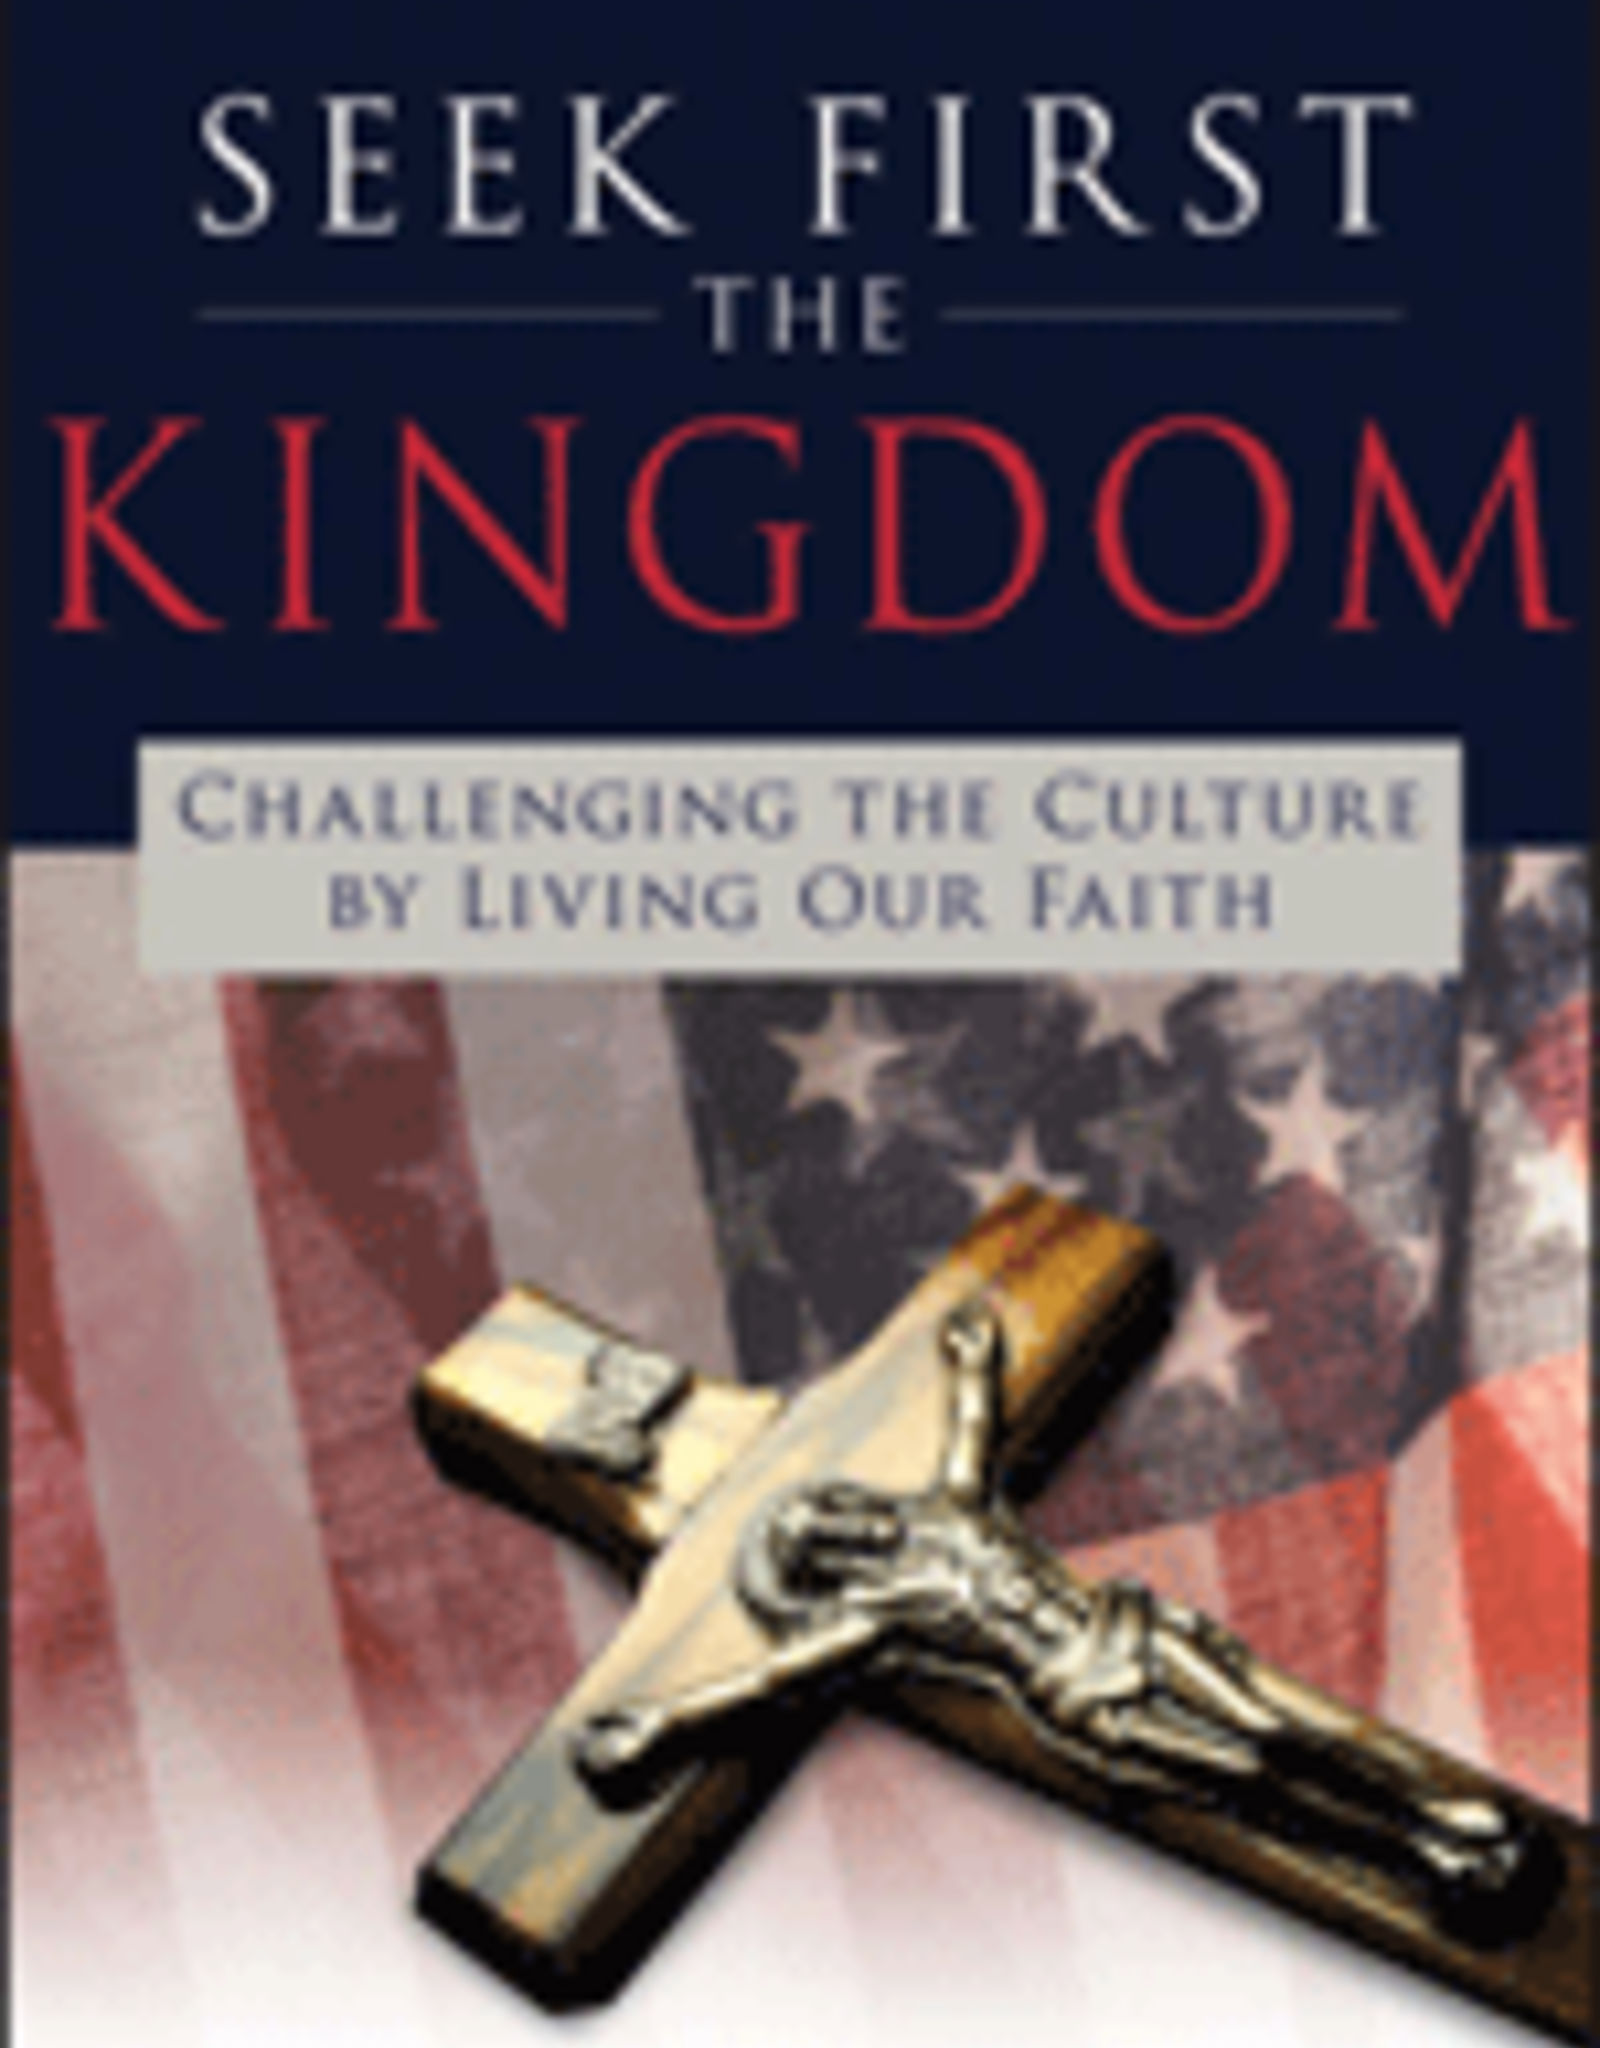 Our Sunday Visitor Seek First the Kingdom:  Challenging the Culture, by Cardinal Donald Wuerl (hardcover)